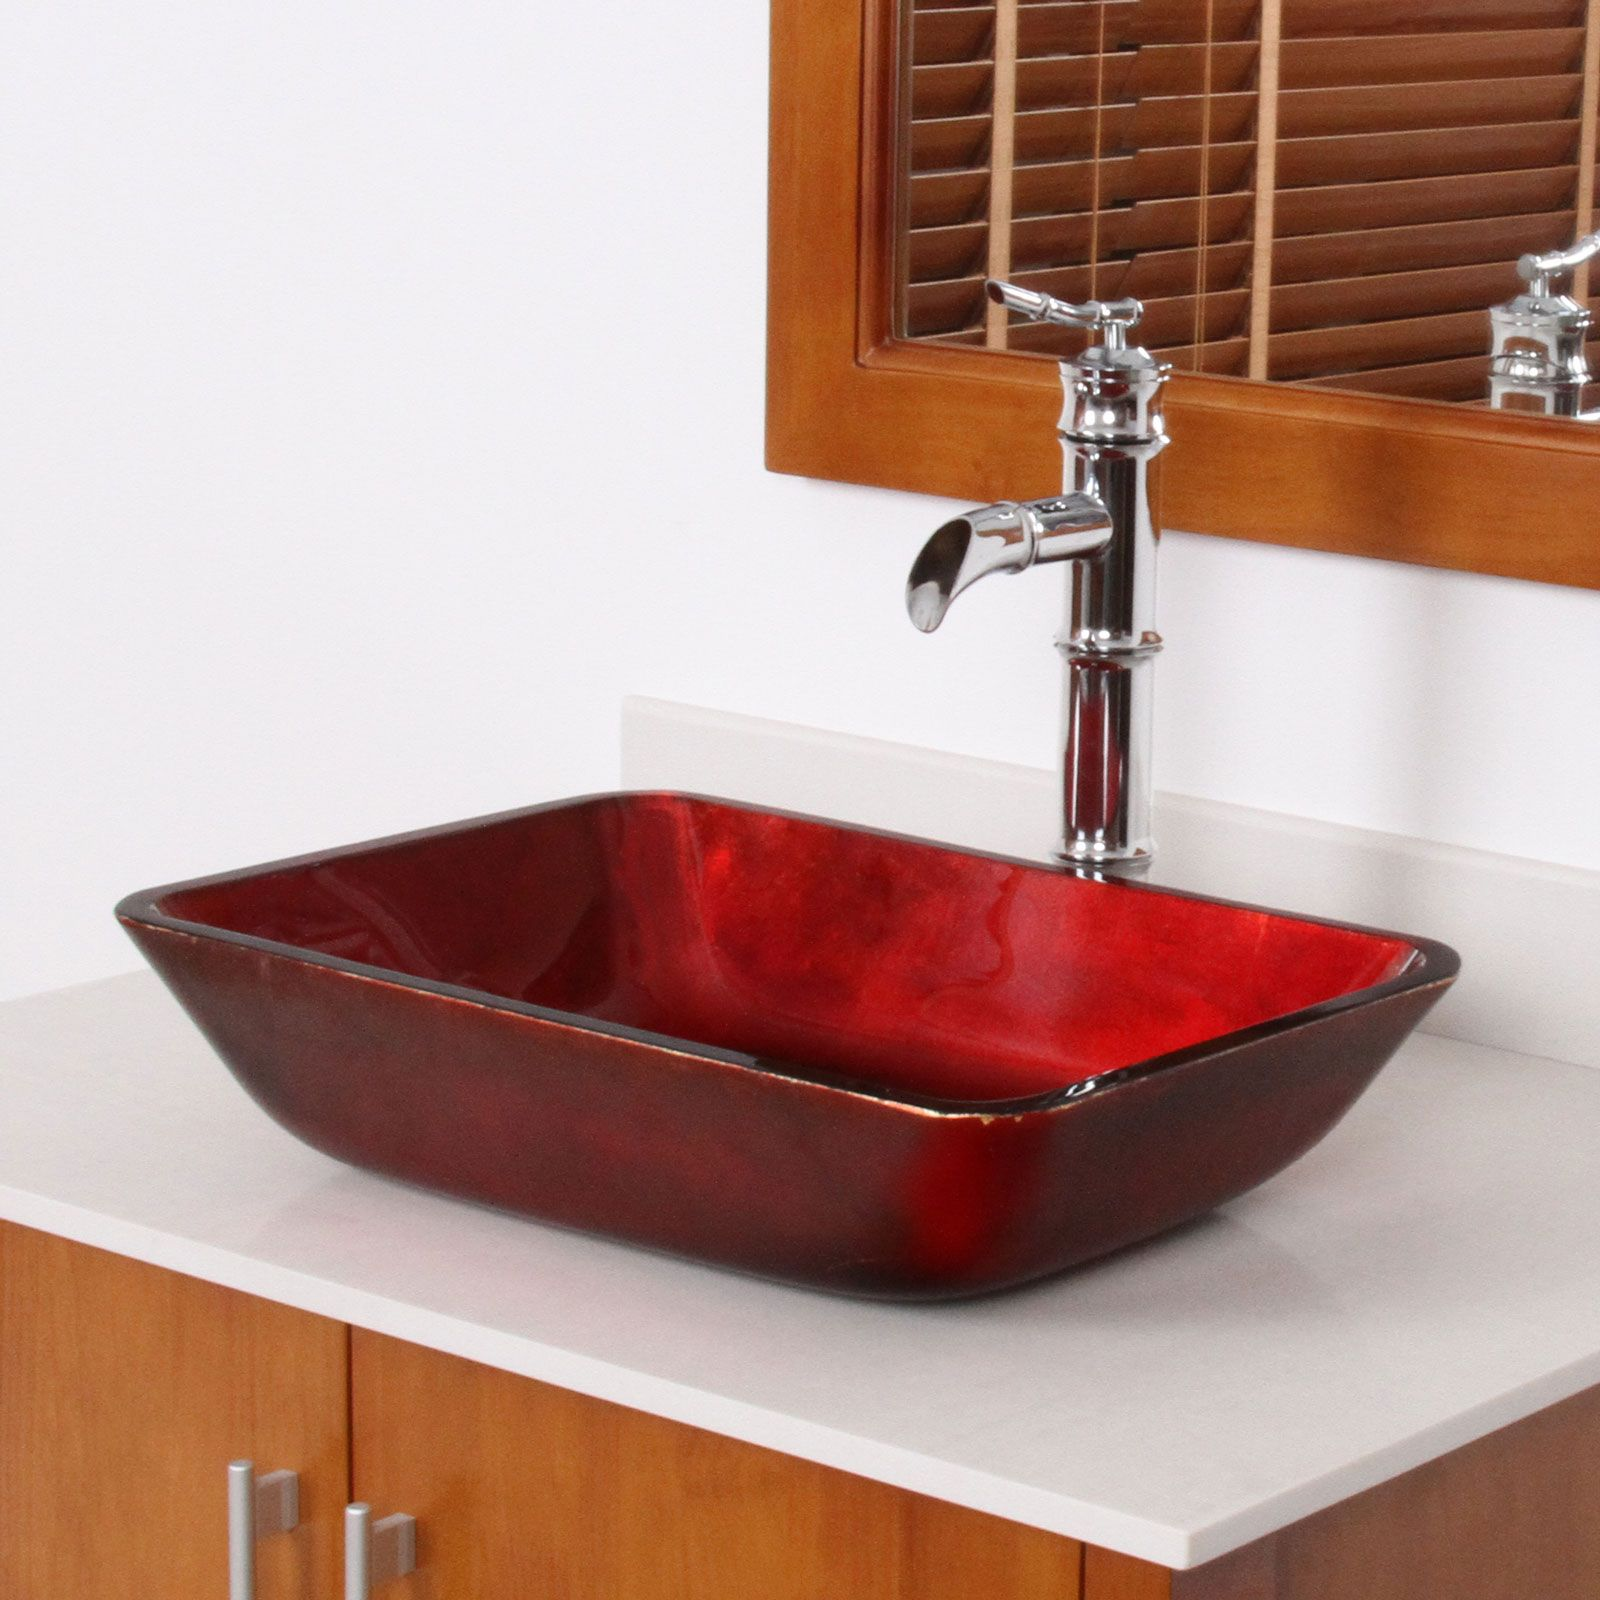 Vessel Kitchen Sink Elite 1410 rectangle mahogany tempered glass bathroom vessel sink elite 1410 rectangle mahogany tempered glass bathroom vessel sink bathroom sinks stone sinkkitchen workwithnaturefo